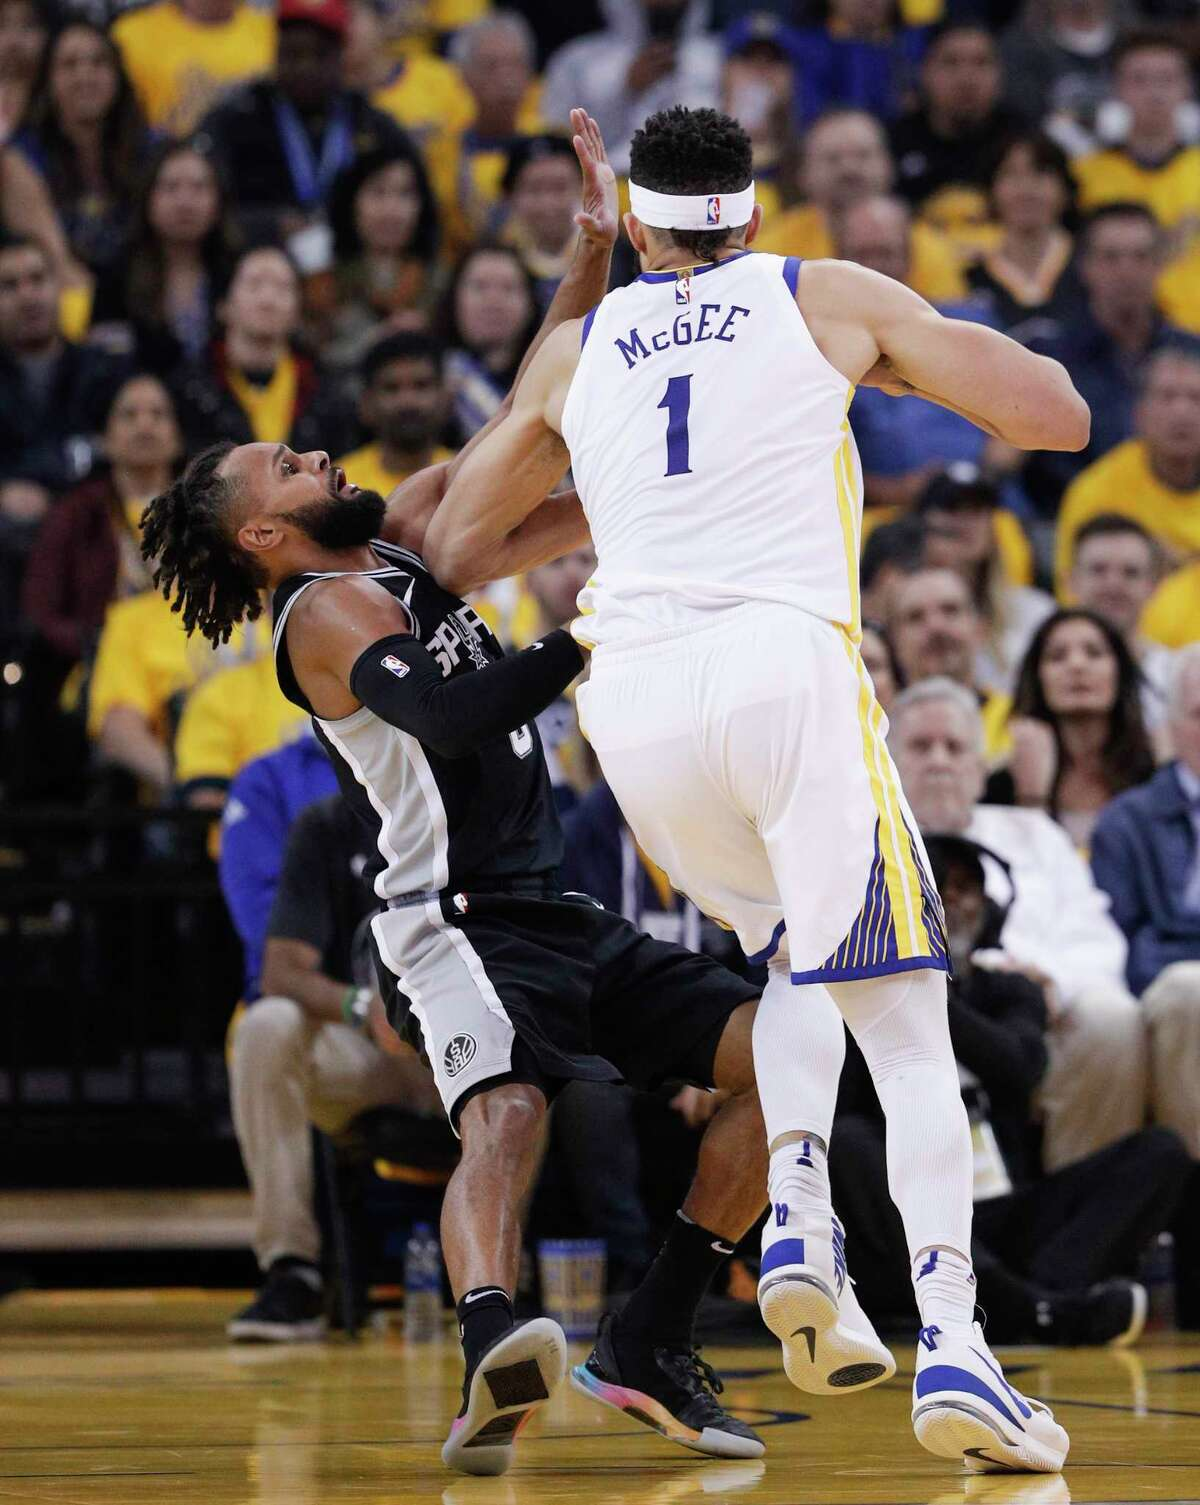 San Antonio Spurs' Patty Mills tries to defend against Golden State Warriors' JaVale McGee in the first quarter during game 5 of round 1 of the Western Conference Finals at Oracle Arena on Wednesday, April 25, 2018 in Oakland, Calif.